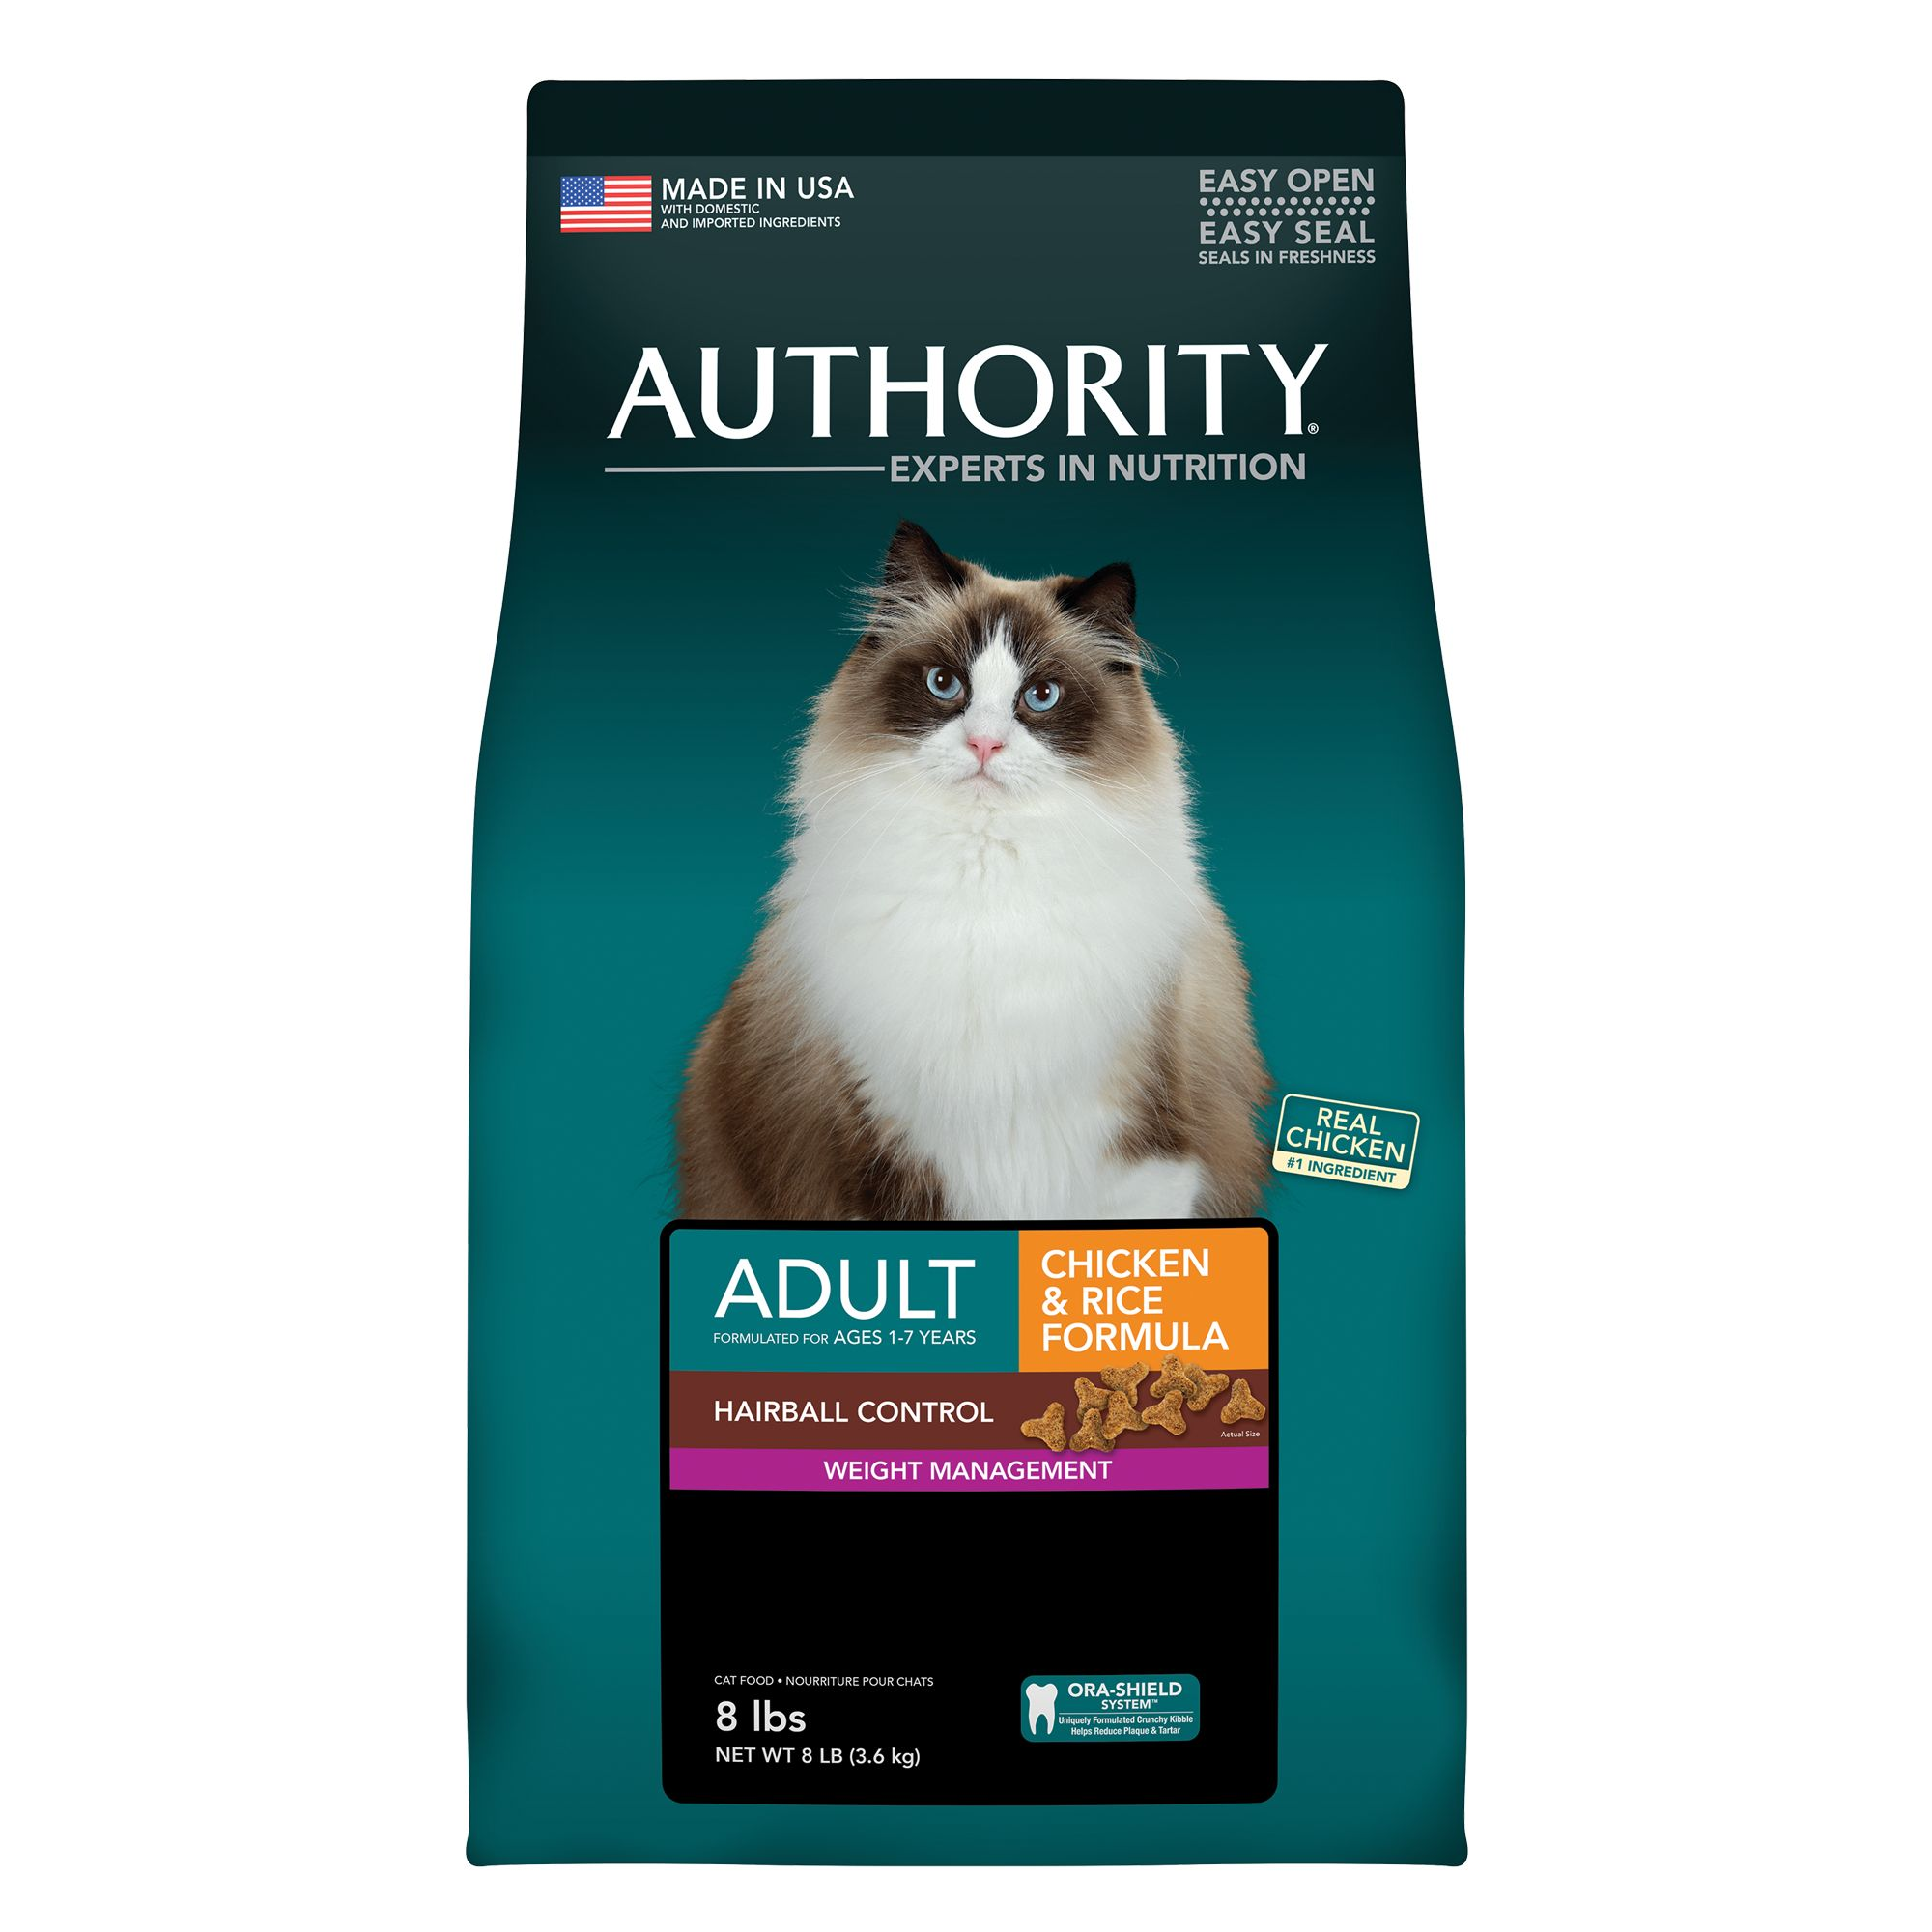 Authority® Hairball Control and Weight Management Adult Cat Food size: 8 Lb